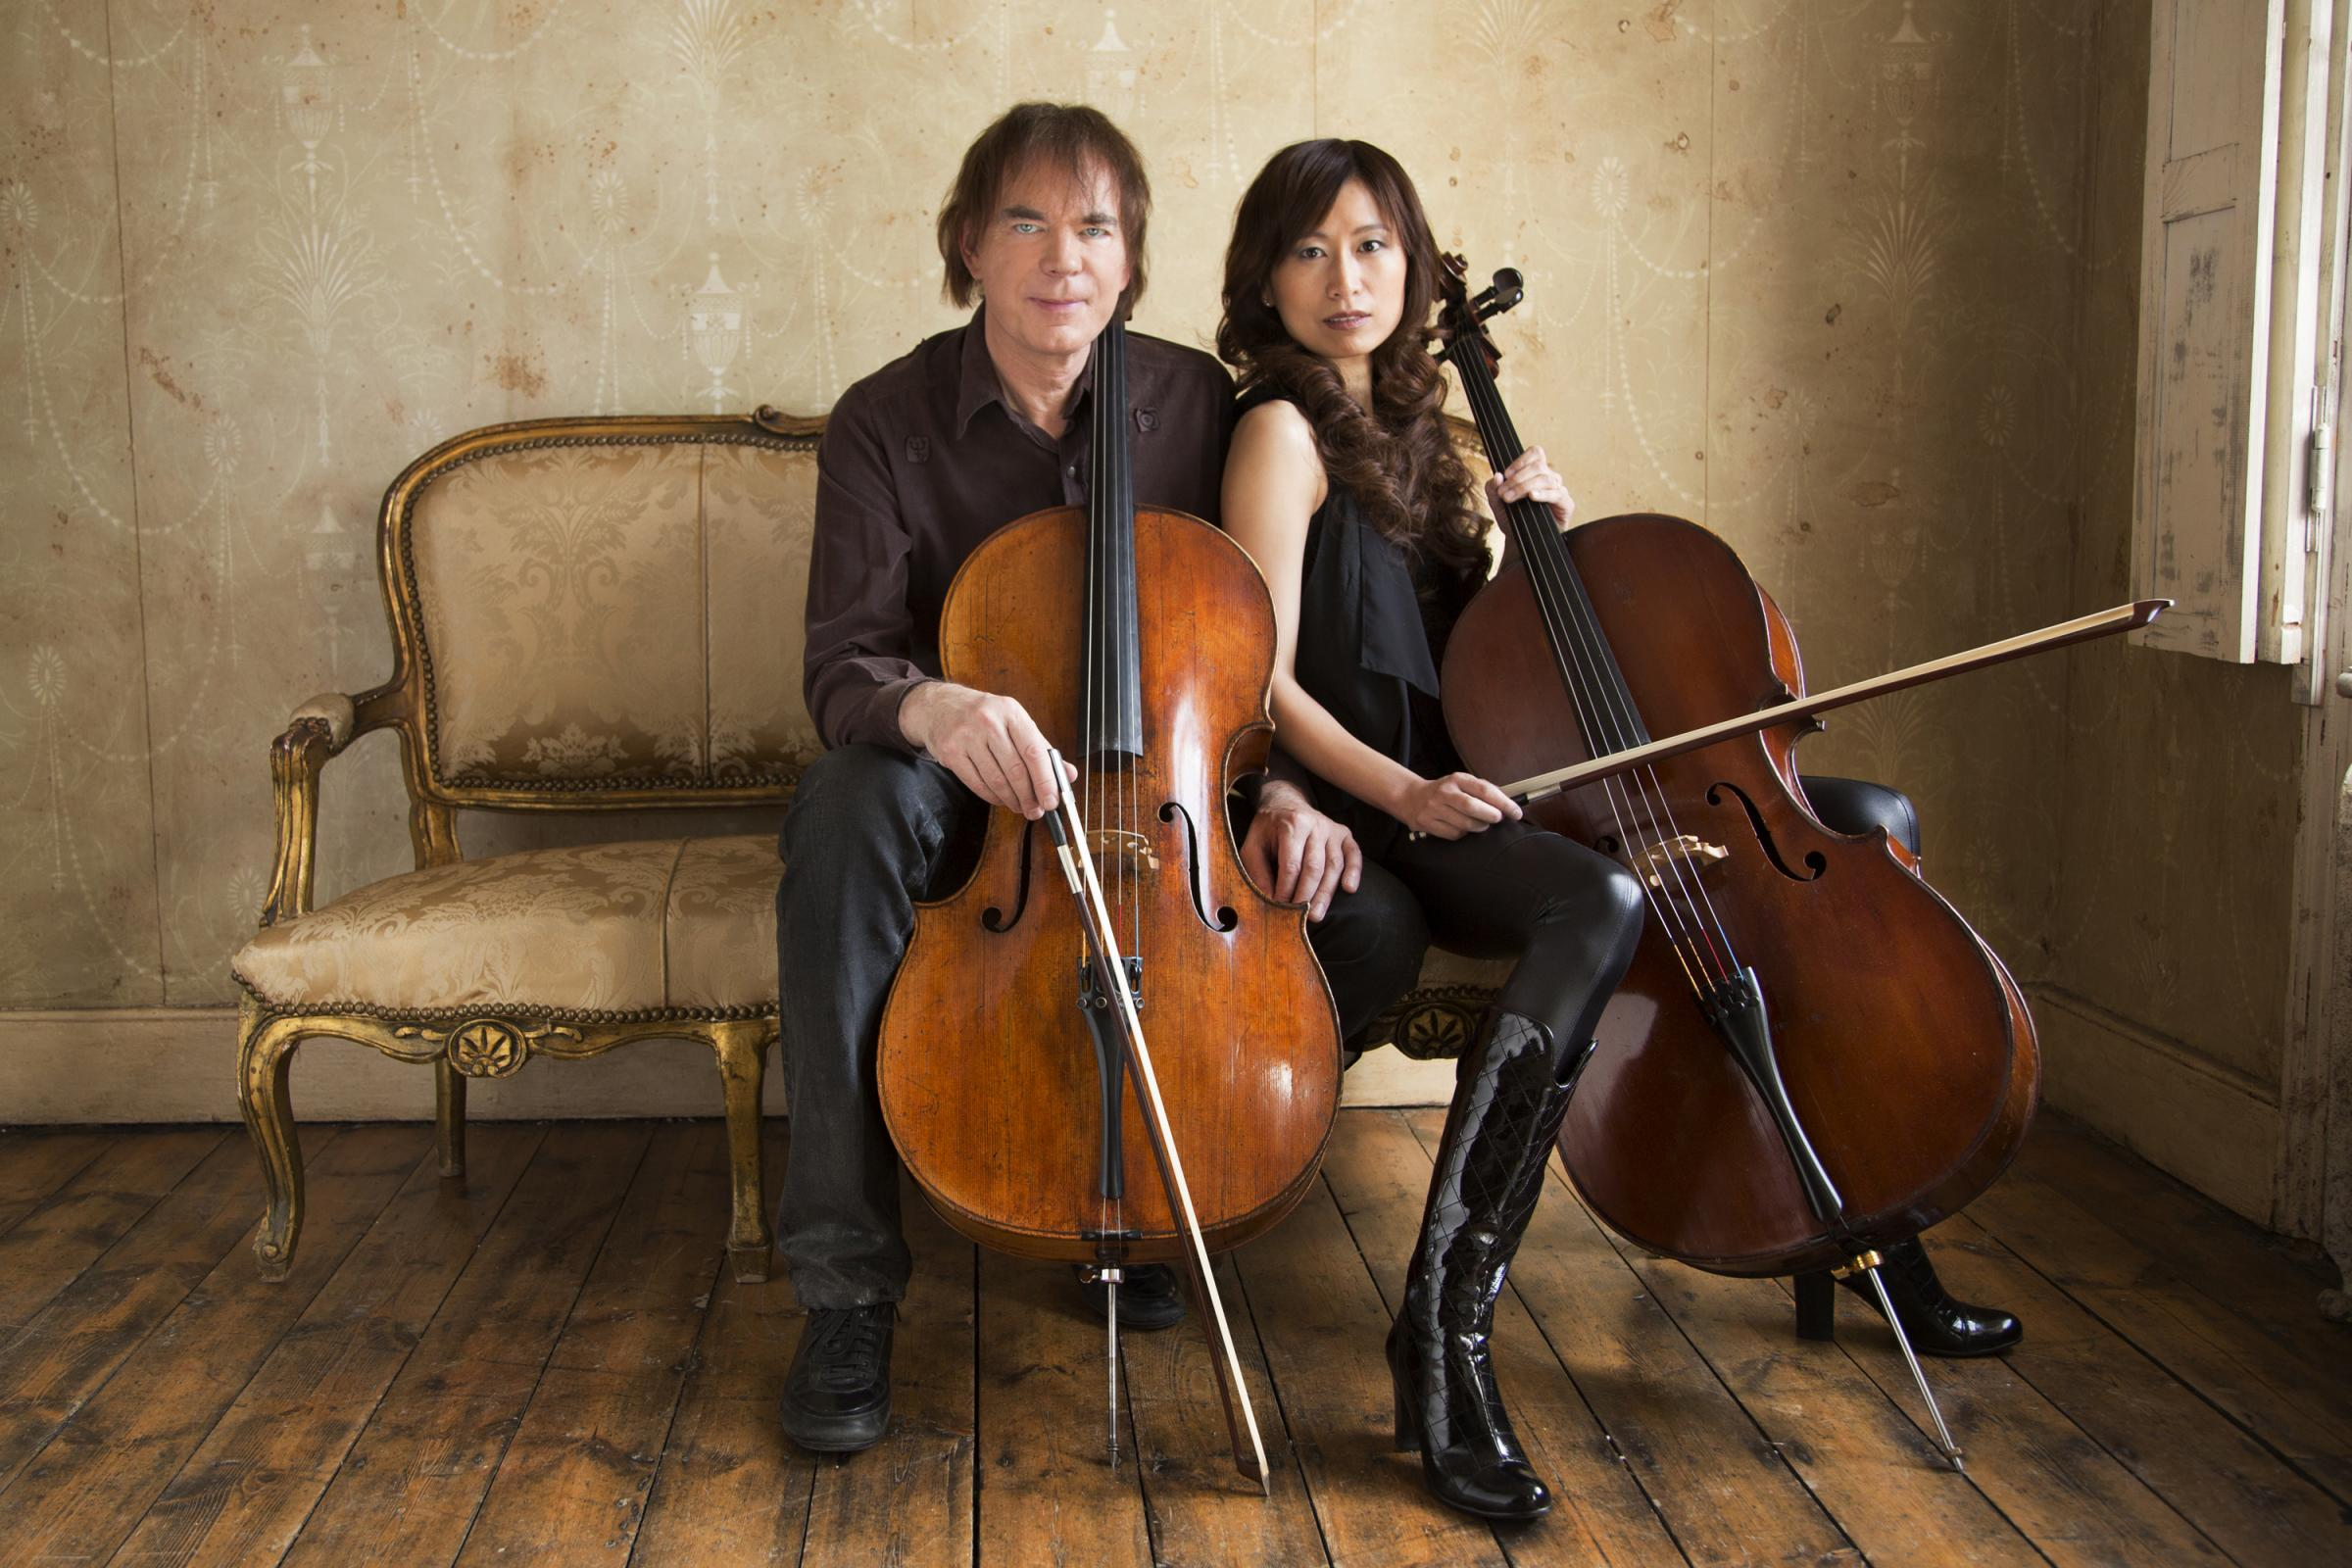 Chapel meeting:  Julian and Jiaxin Lloyd Webber's evening of music and conversation at Malton's Wesley Centre